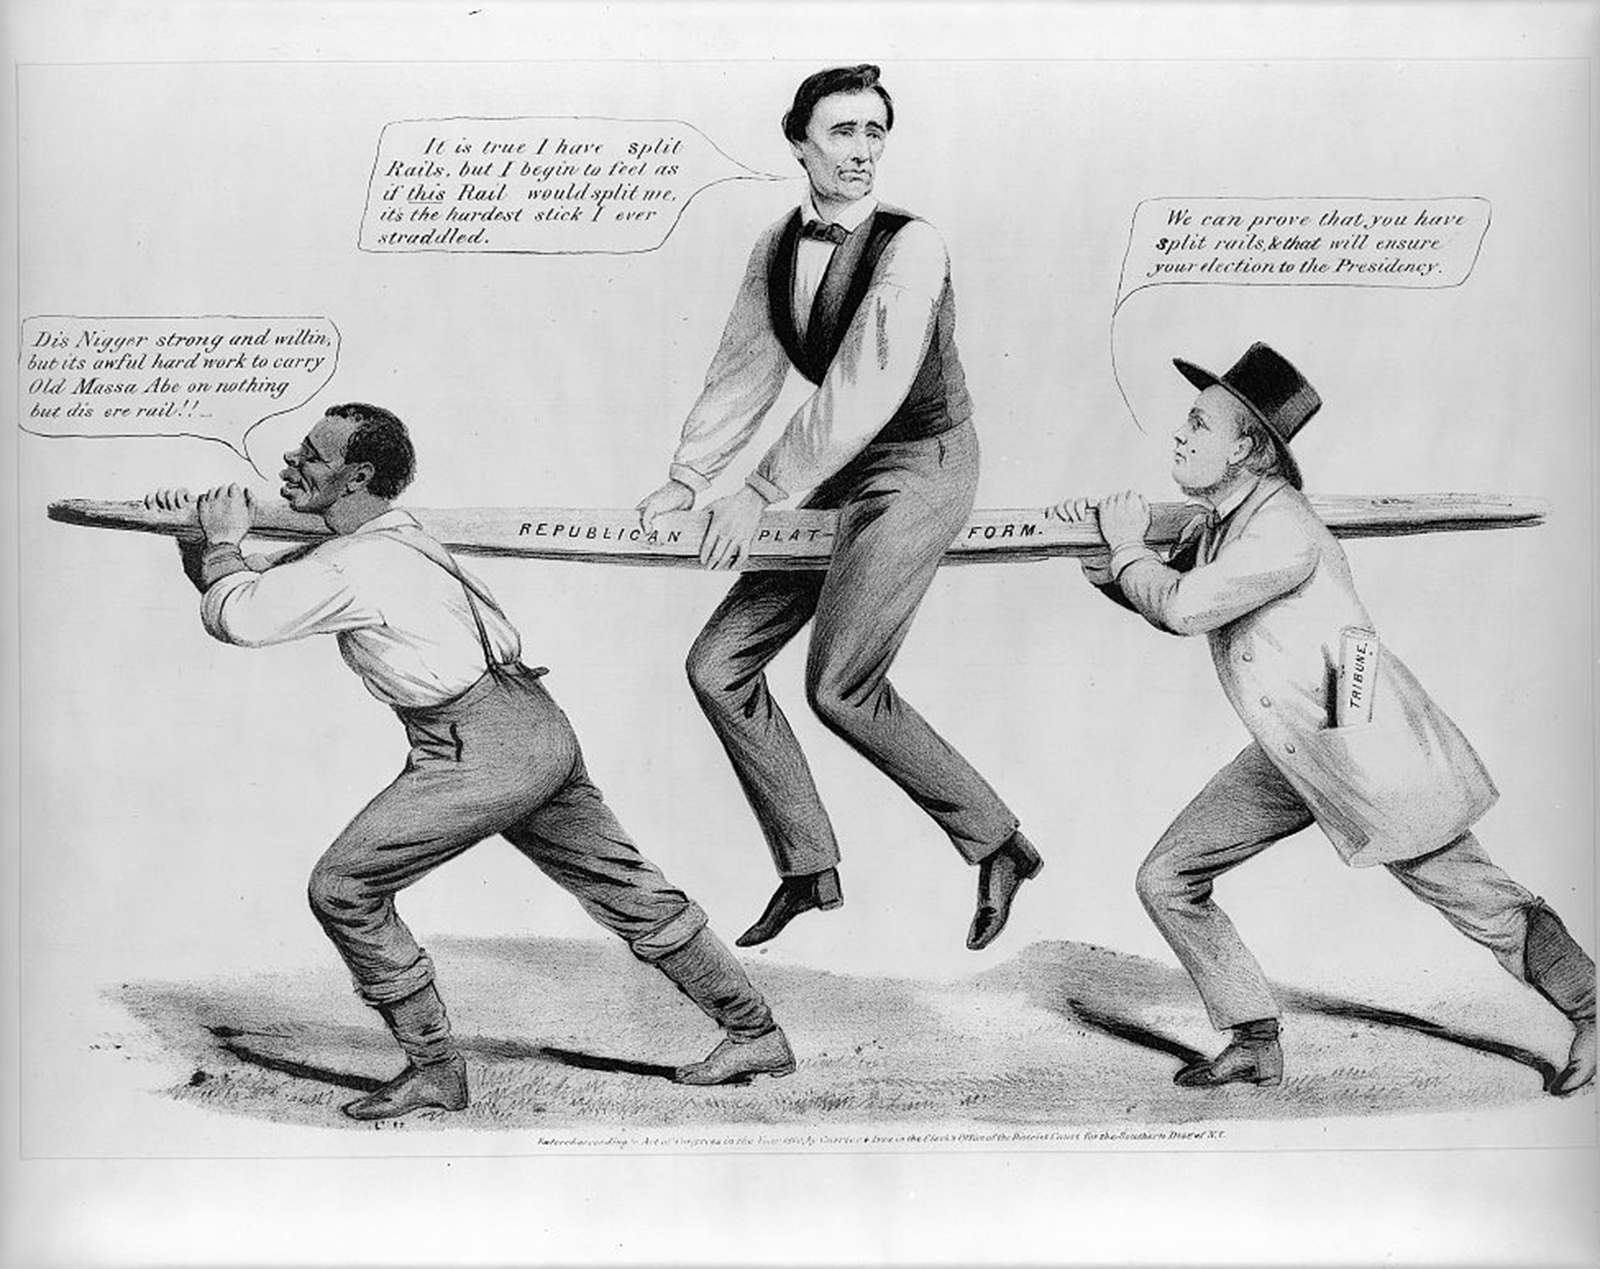 """In this political cartoon, Abraham Lincoln uncomfortably straddles a rail supported by a black man and Horace Greeley (editor of the New York """"Tribune""""). The wood board is a dual reference to the antislavery plank of the 1860 Republican platform -- which Lincoln seemed to uneasily defend -- and Lincoln's backwoods origins. Louis Maurer, """"The Rail Candidate,"""" Currier & Ives, c. 1860. Library of Congress, http://www.loc.gov/pictures/item/2001703953/."""